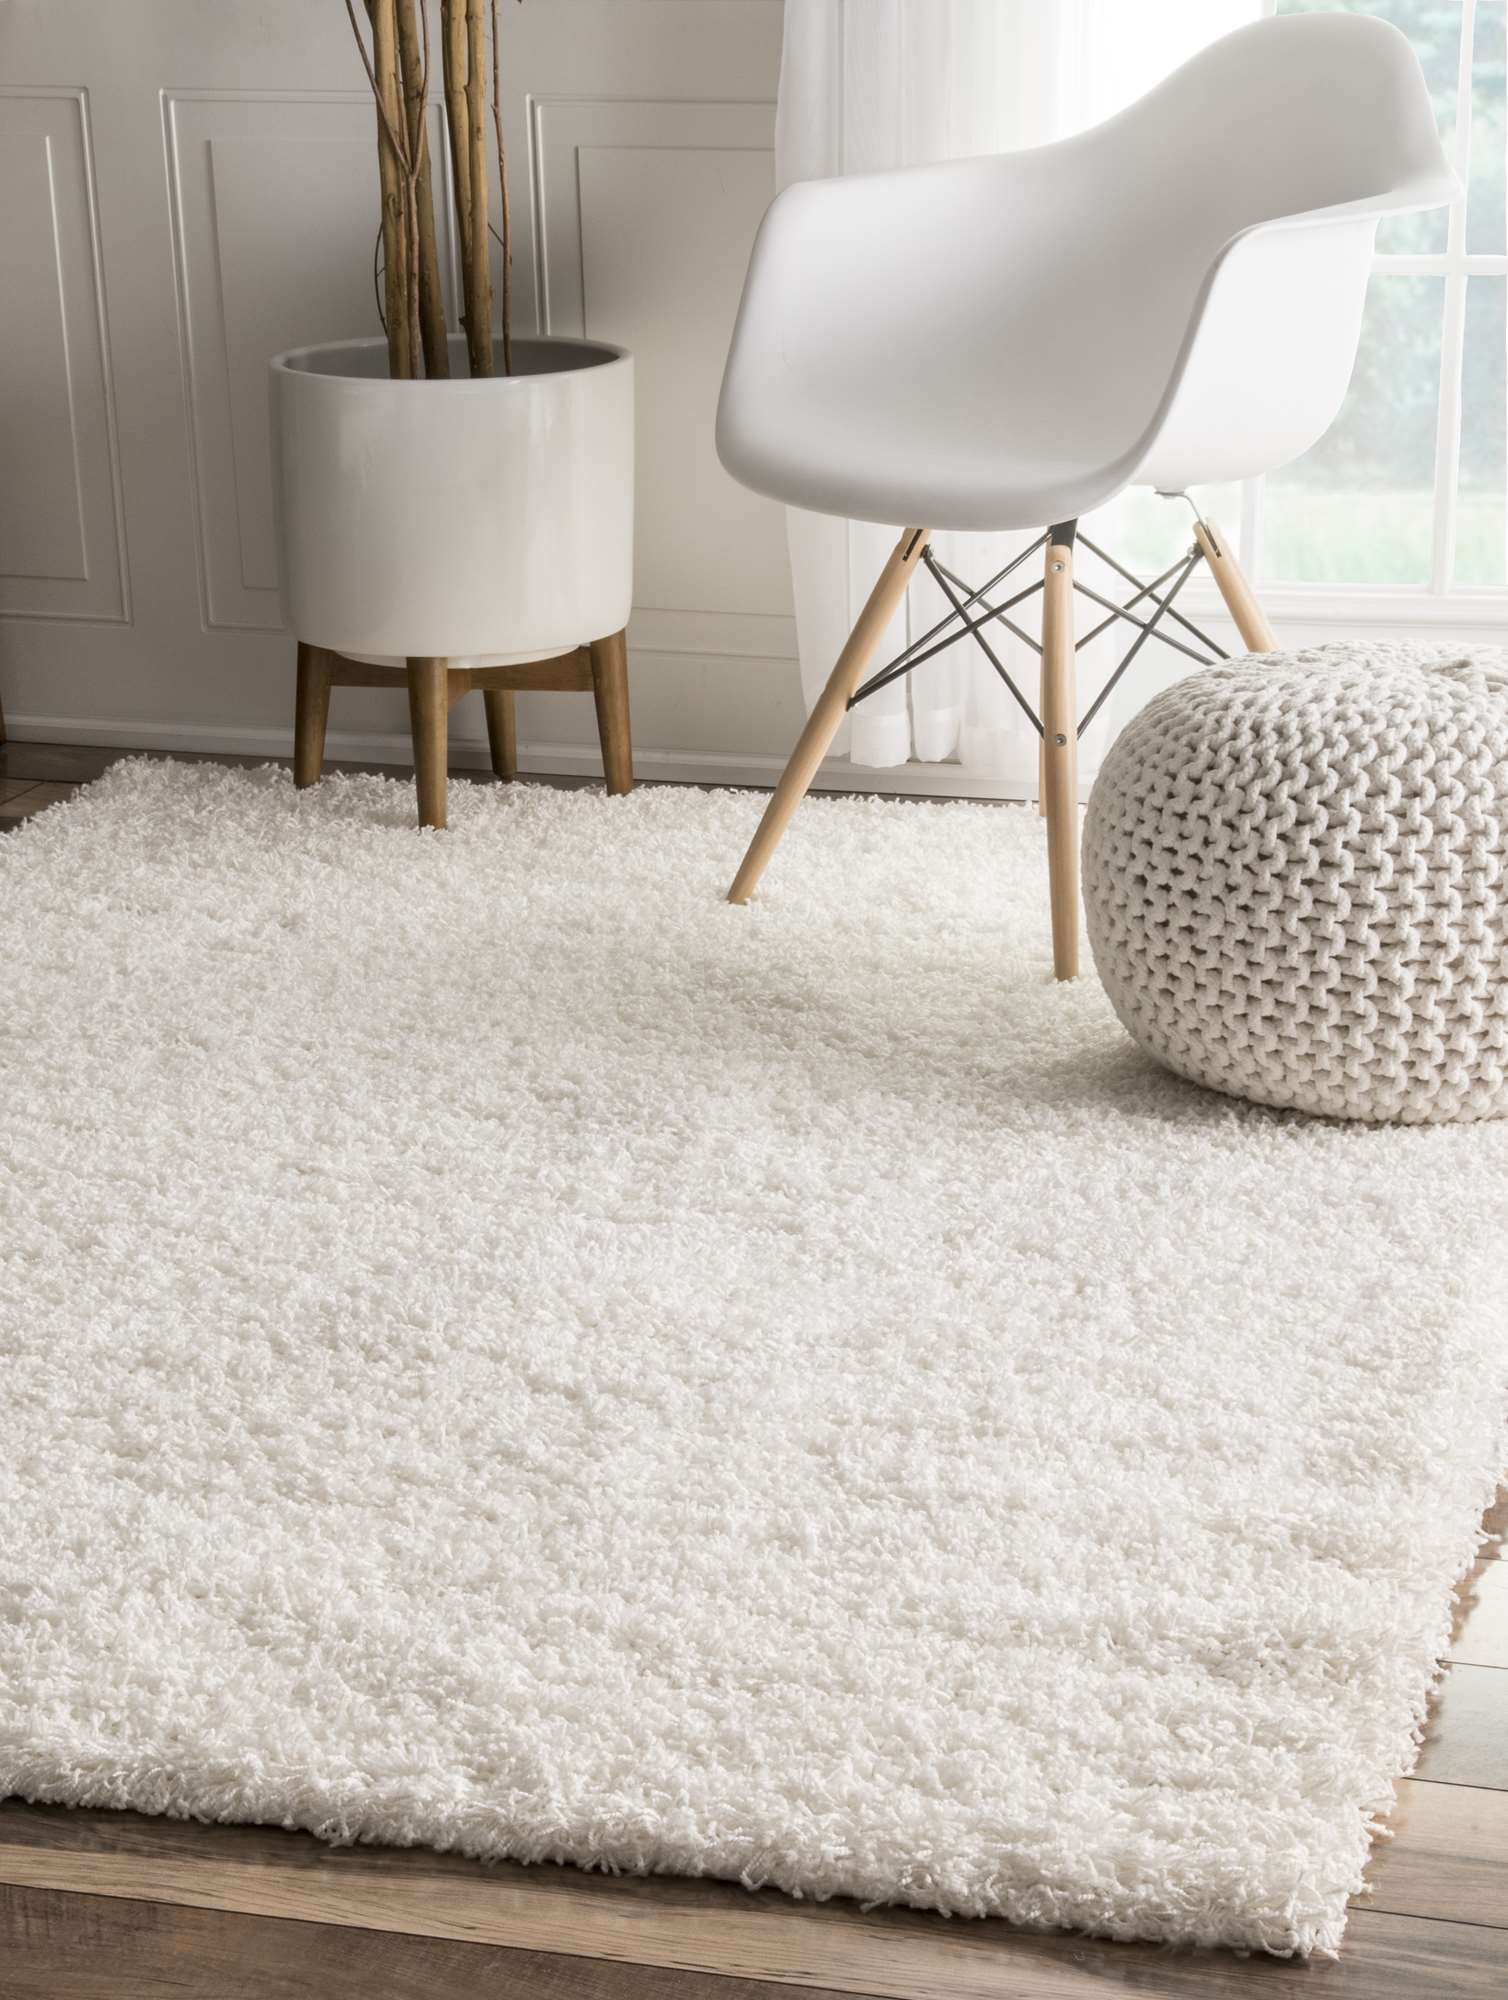 Venice Shaggy White Rug White Shag Rug White Rug Bedroom Carpet